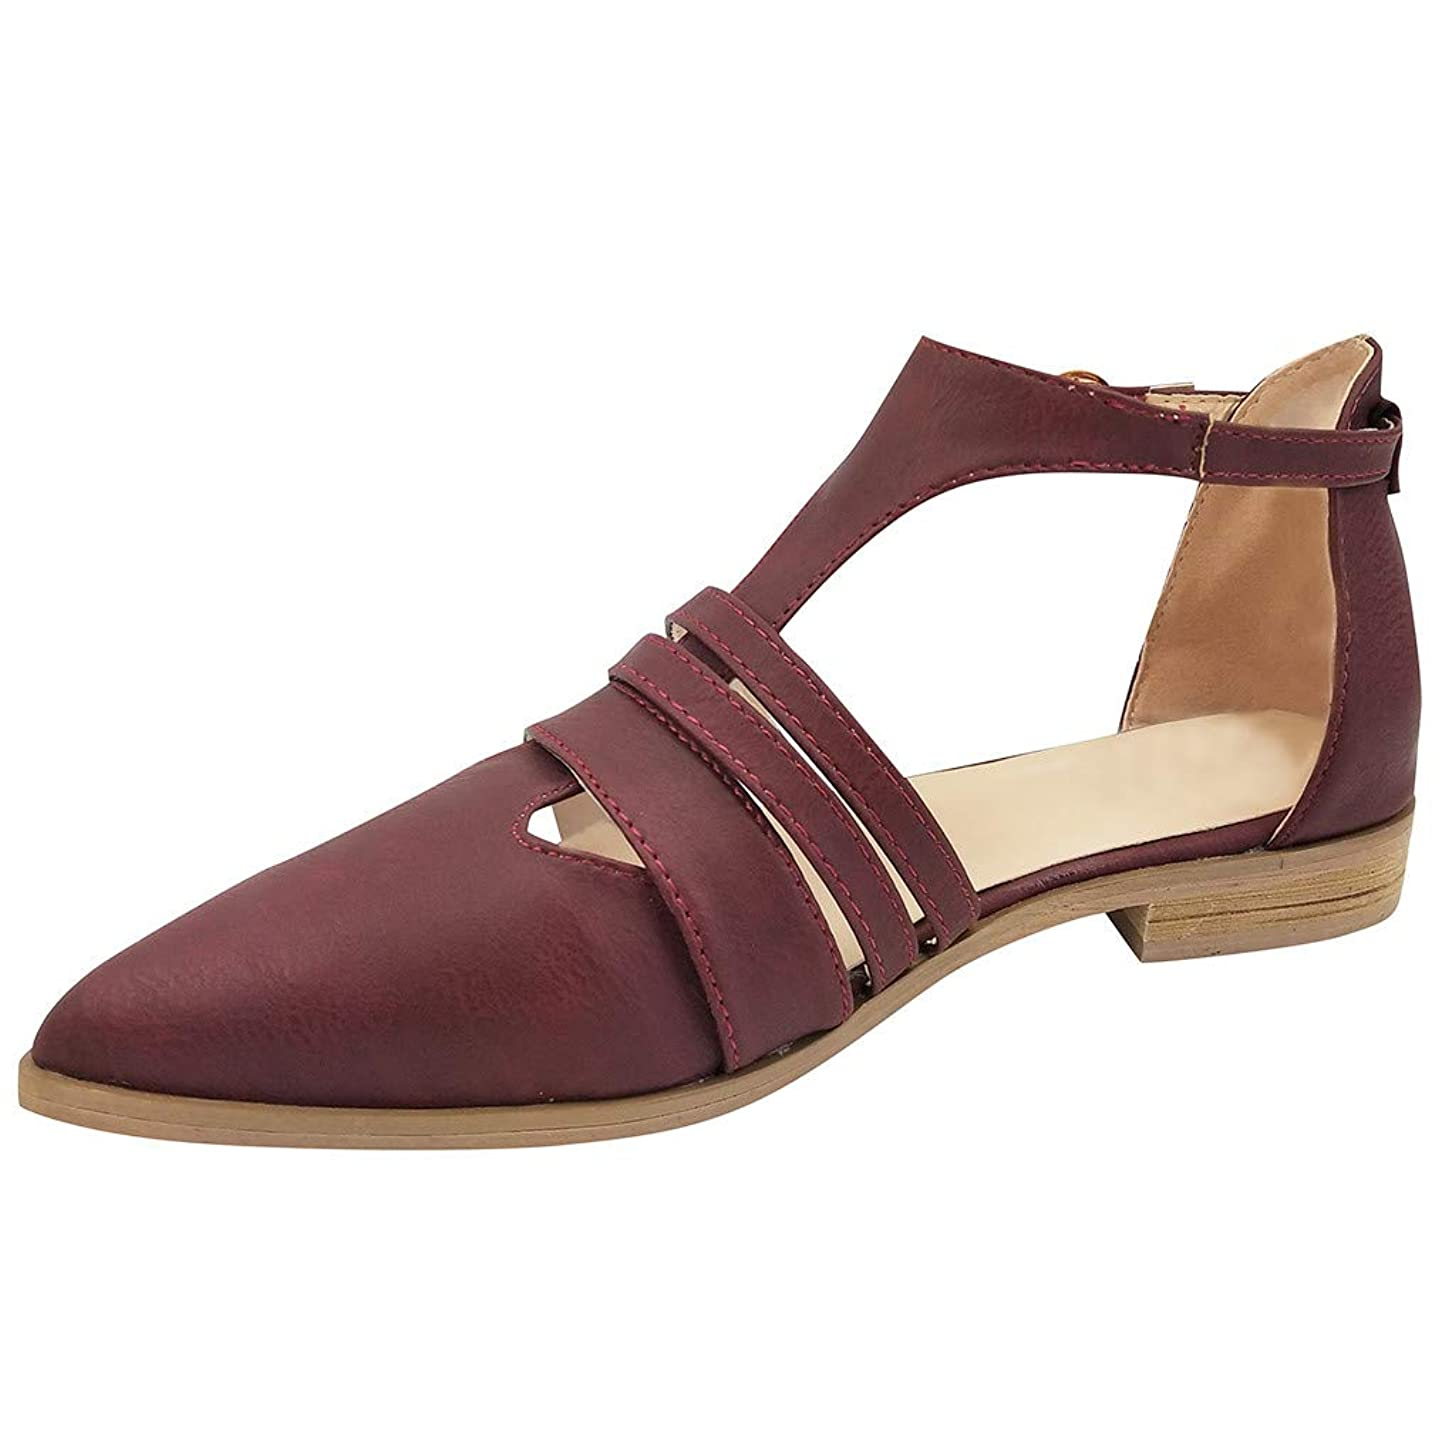 Duseedik Women's Hollow Out Sandals Rome Solid Colors Pointed Toe Low Heel Ankle Buckle Strap Shoes